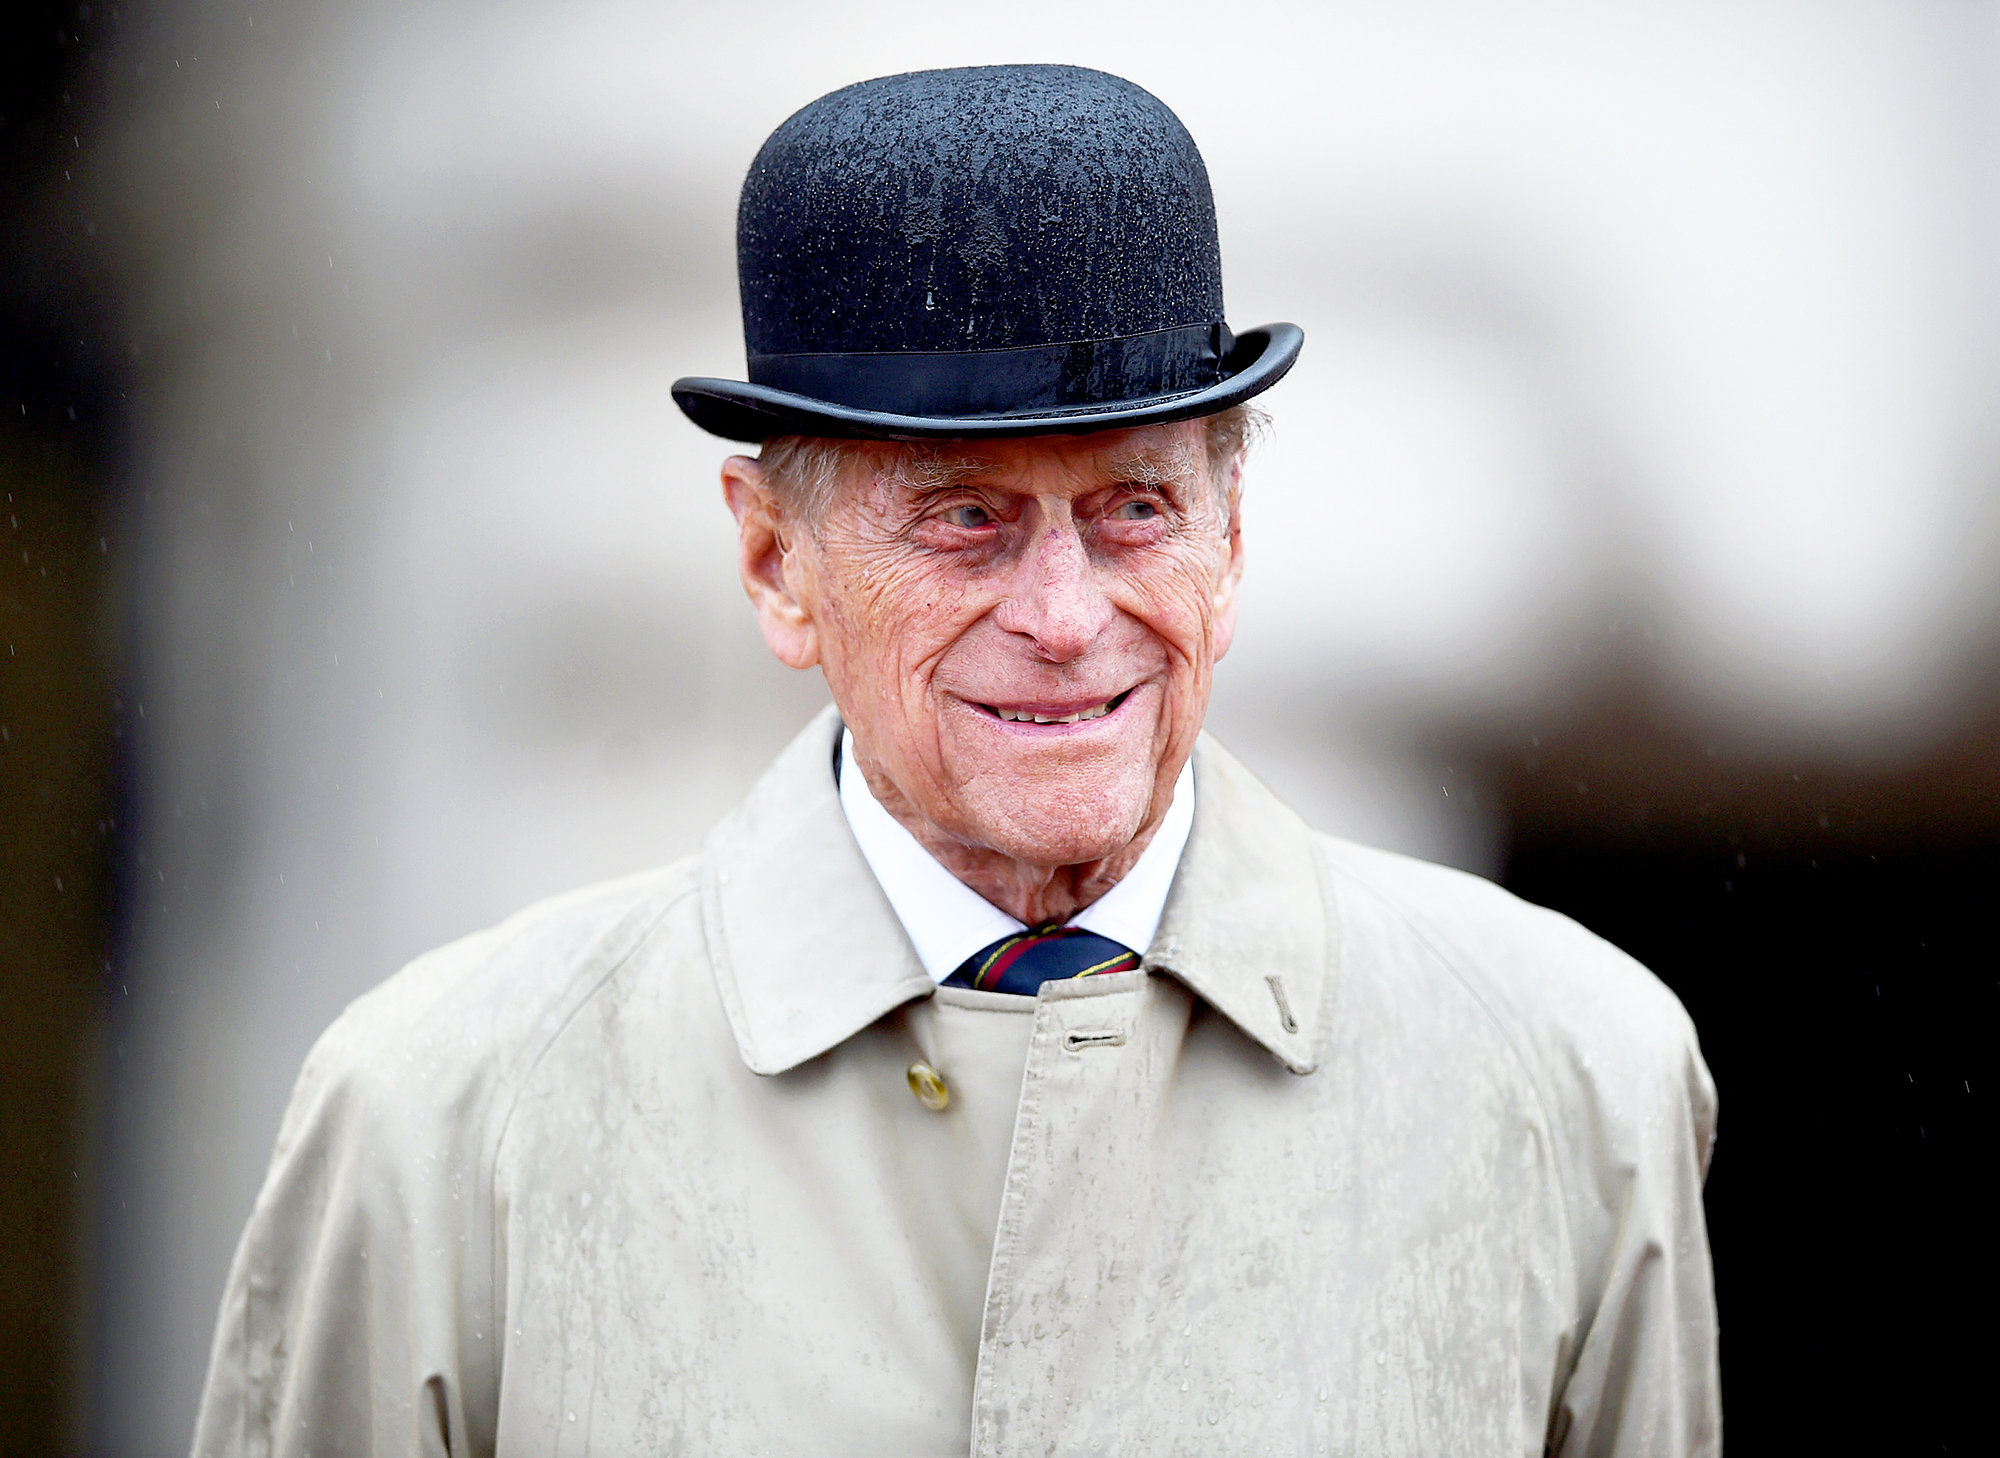 Prince Philip Attends His Last Official Royal Engagement